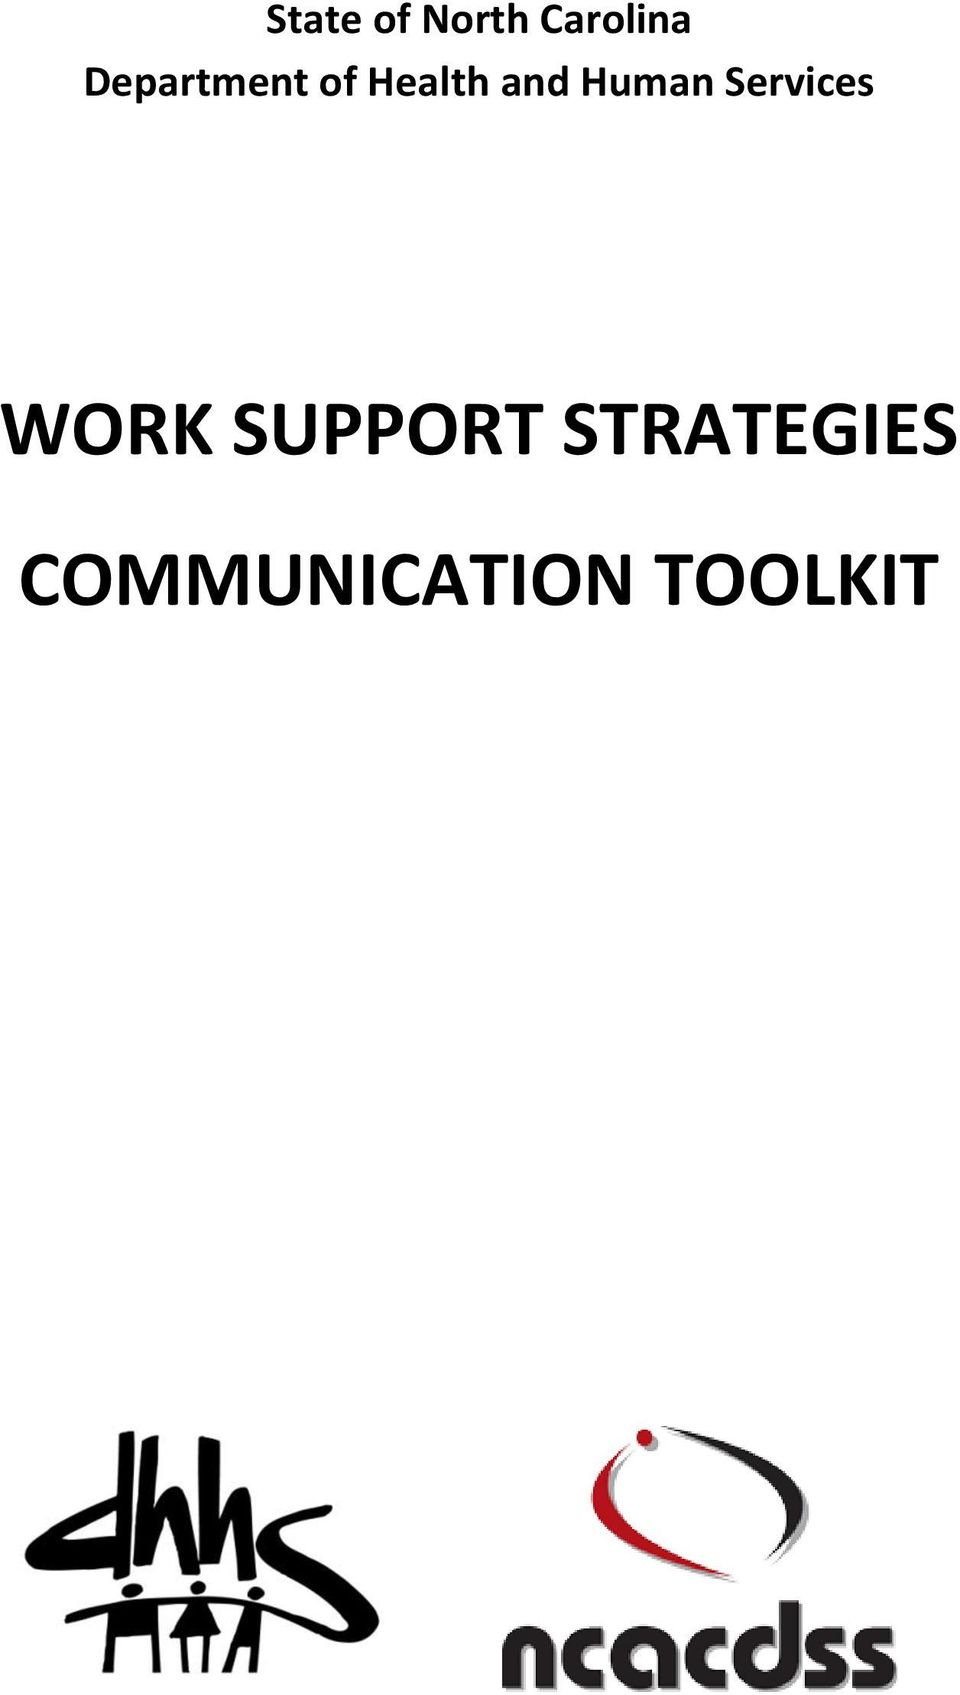 Human Services WORK SUPPORT